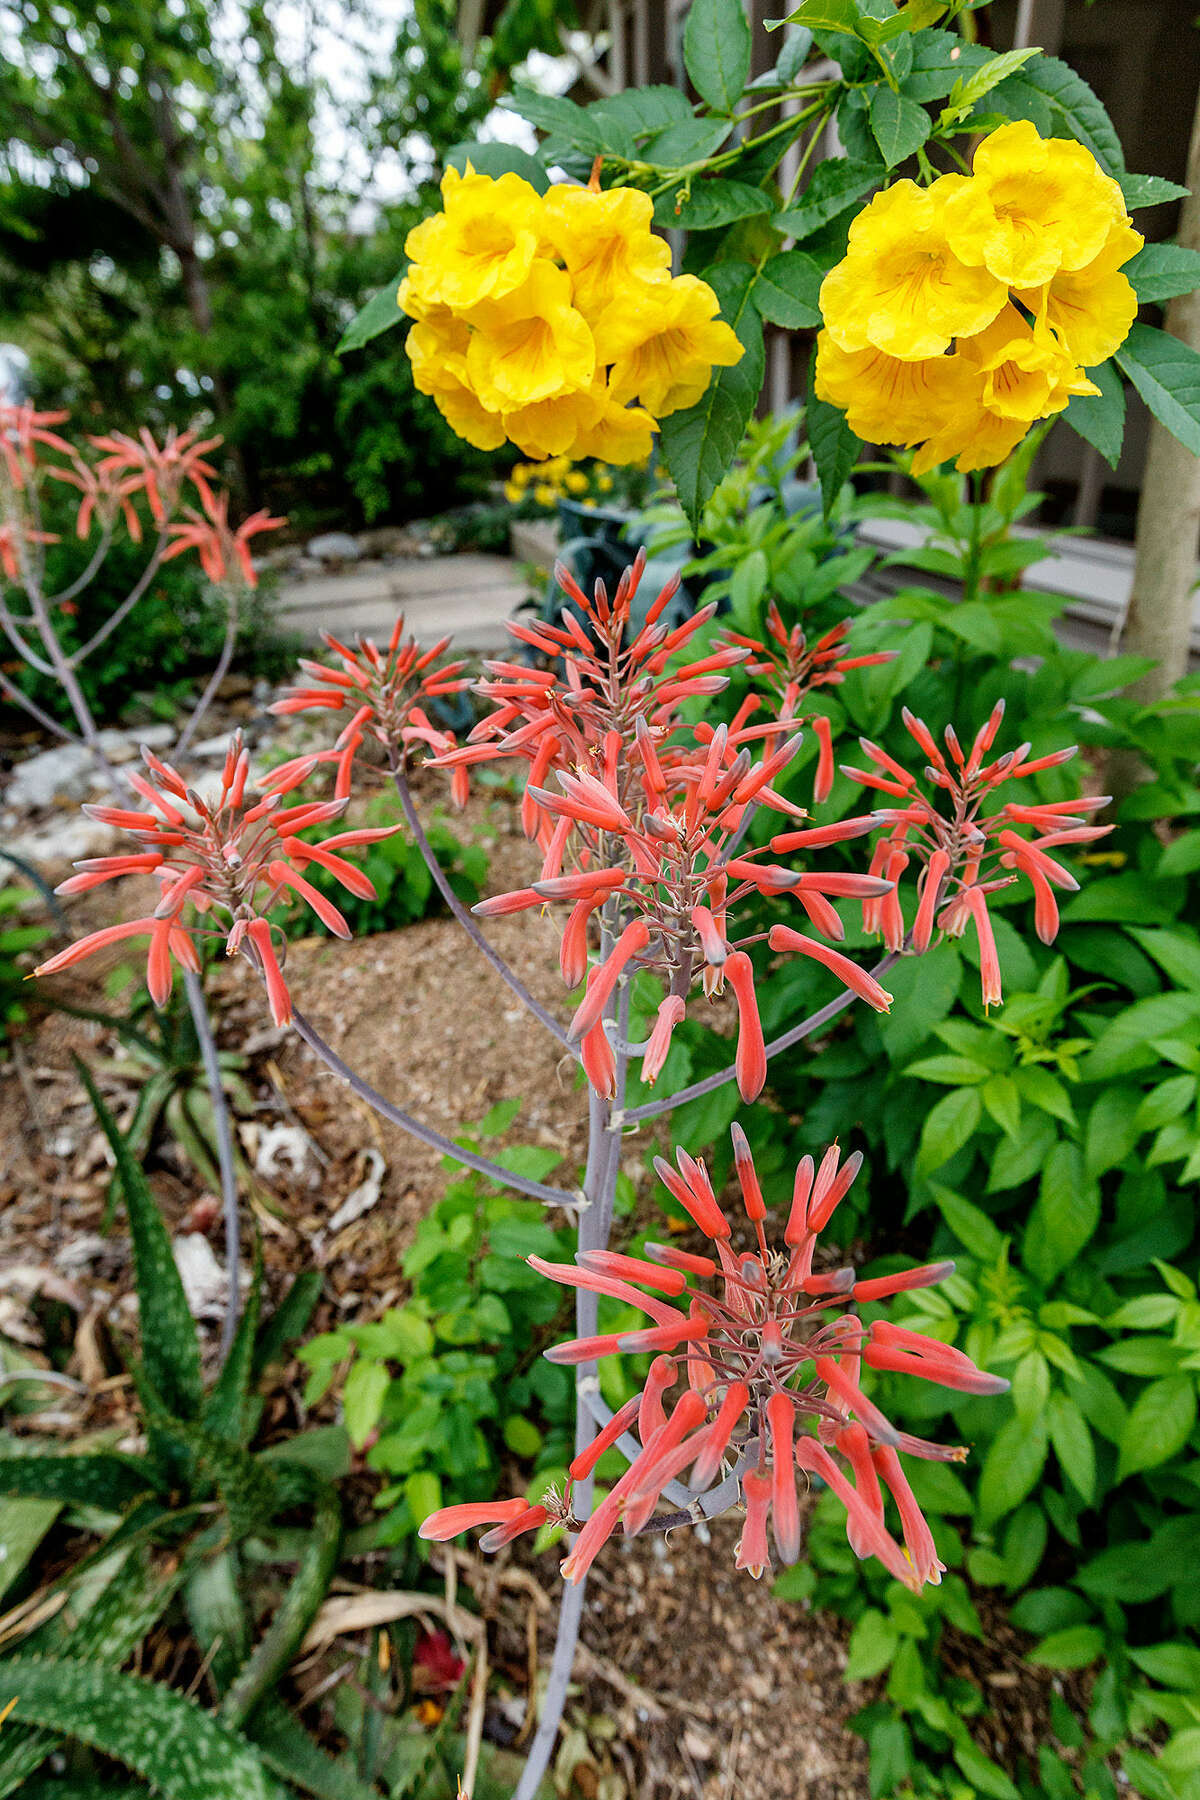 Coral-colored blooms from an aloe plant complement yellow esperanzas at Clark's home.